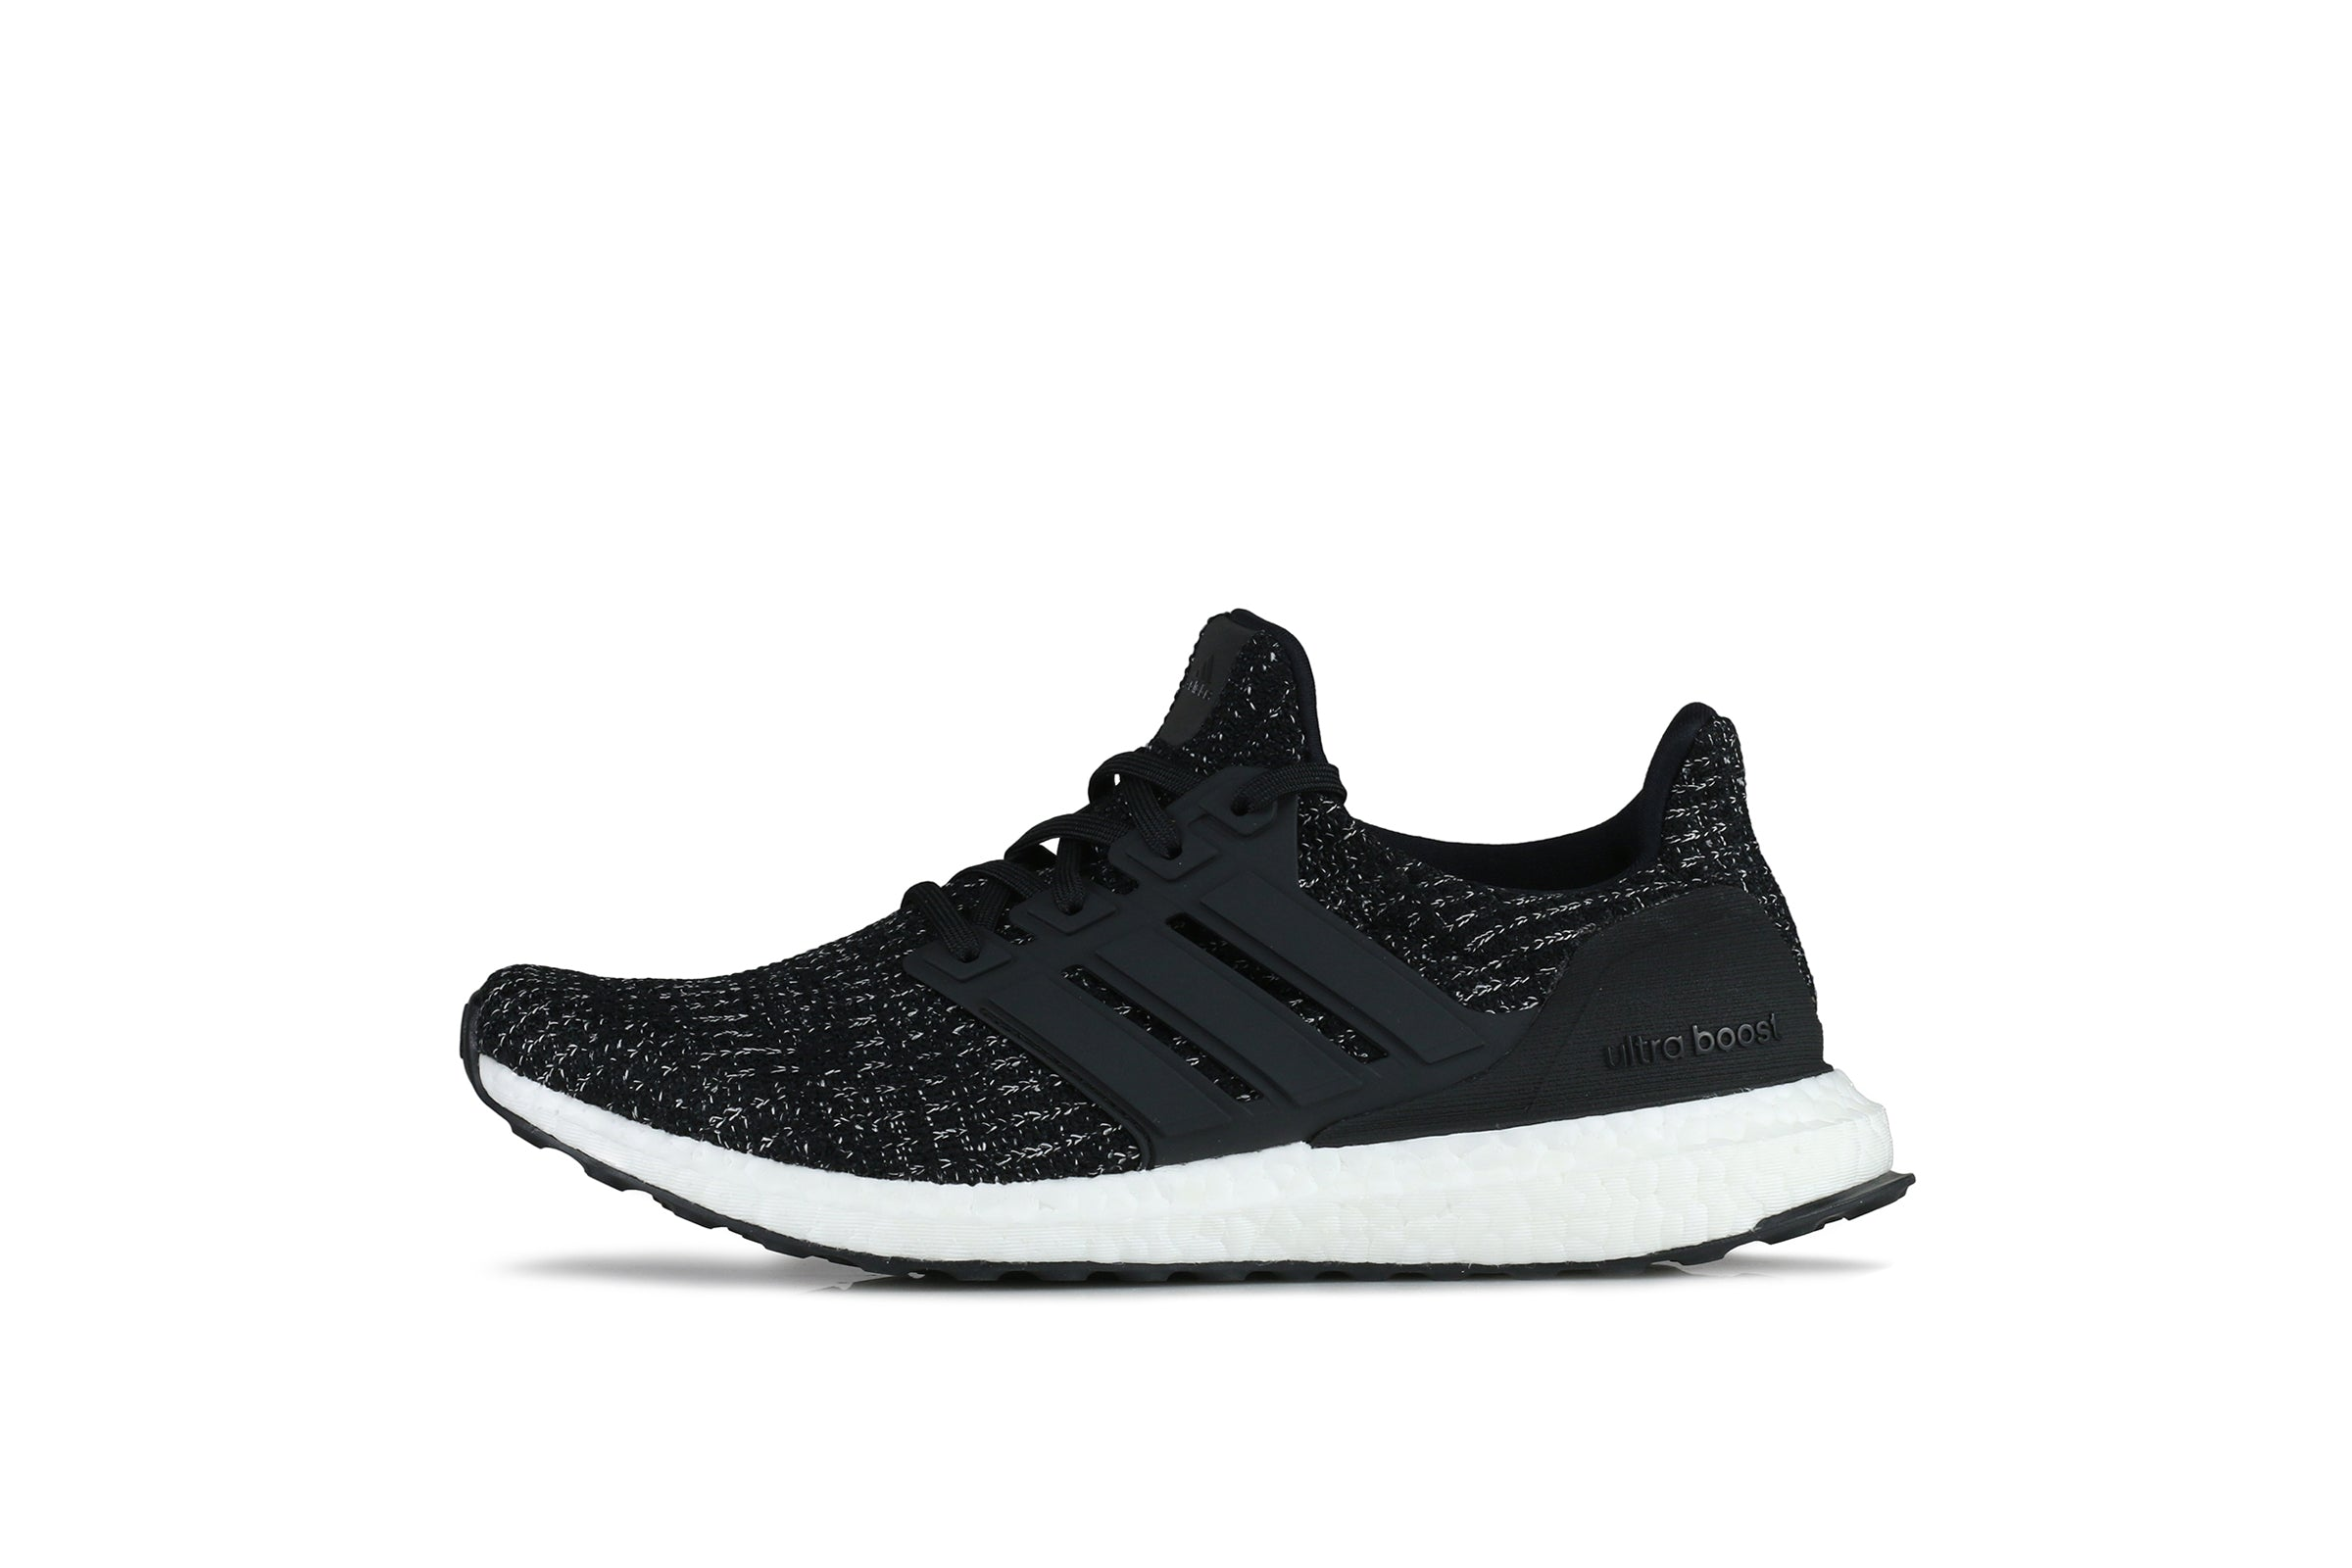 huge discount 8ca0c 46b74 Adidas Ultraboost